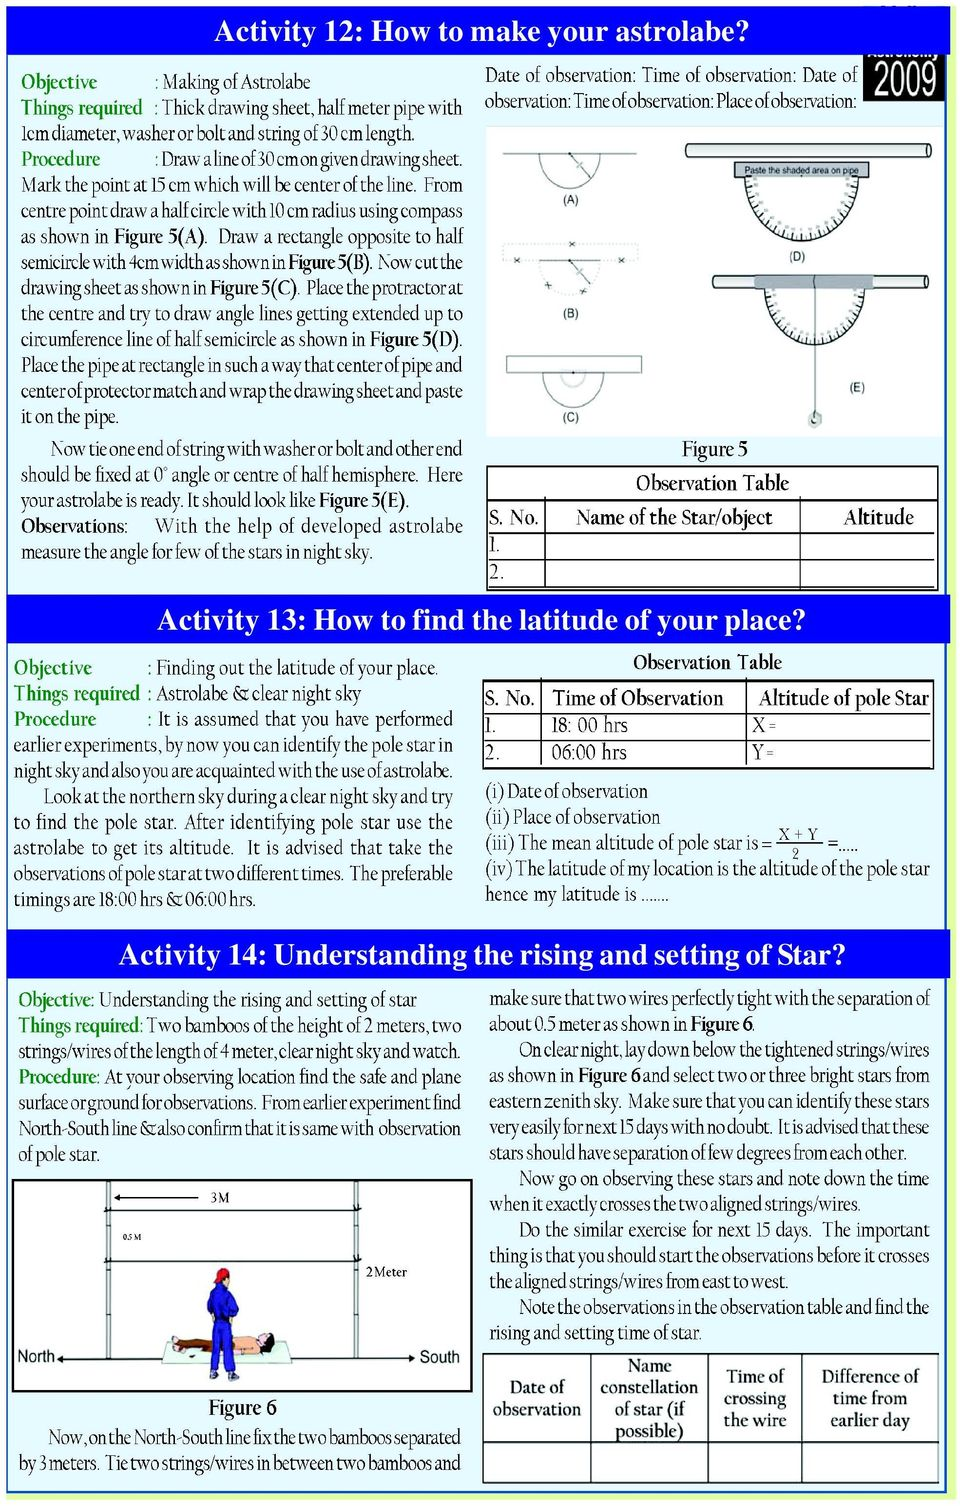 Activity 13: How to find the latitude